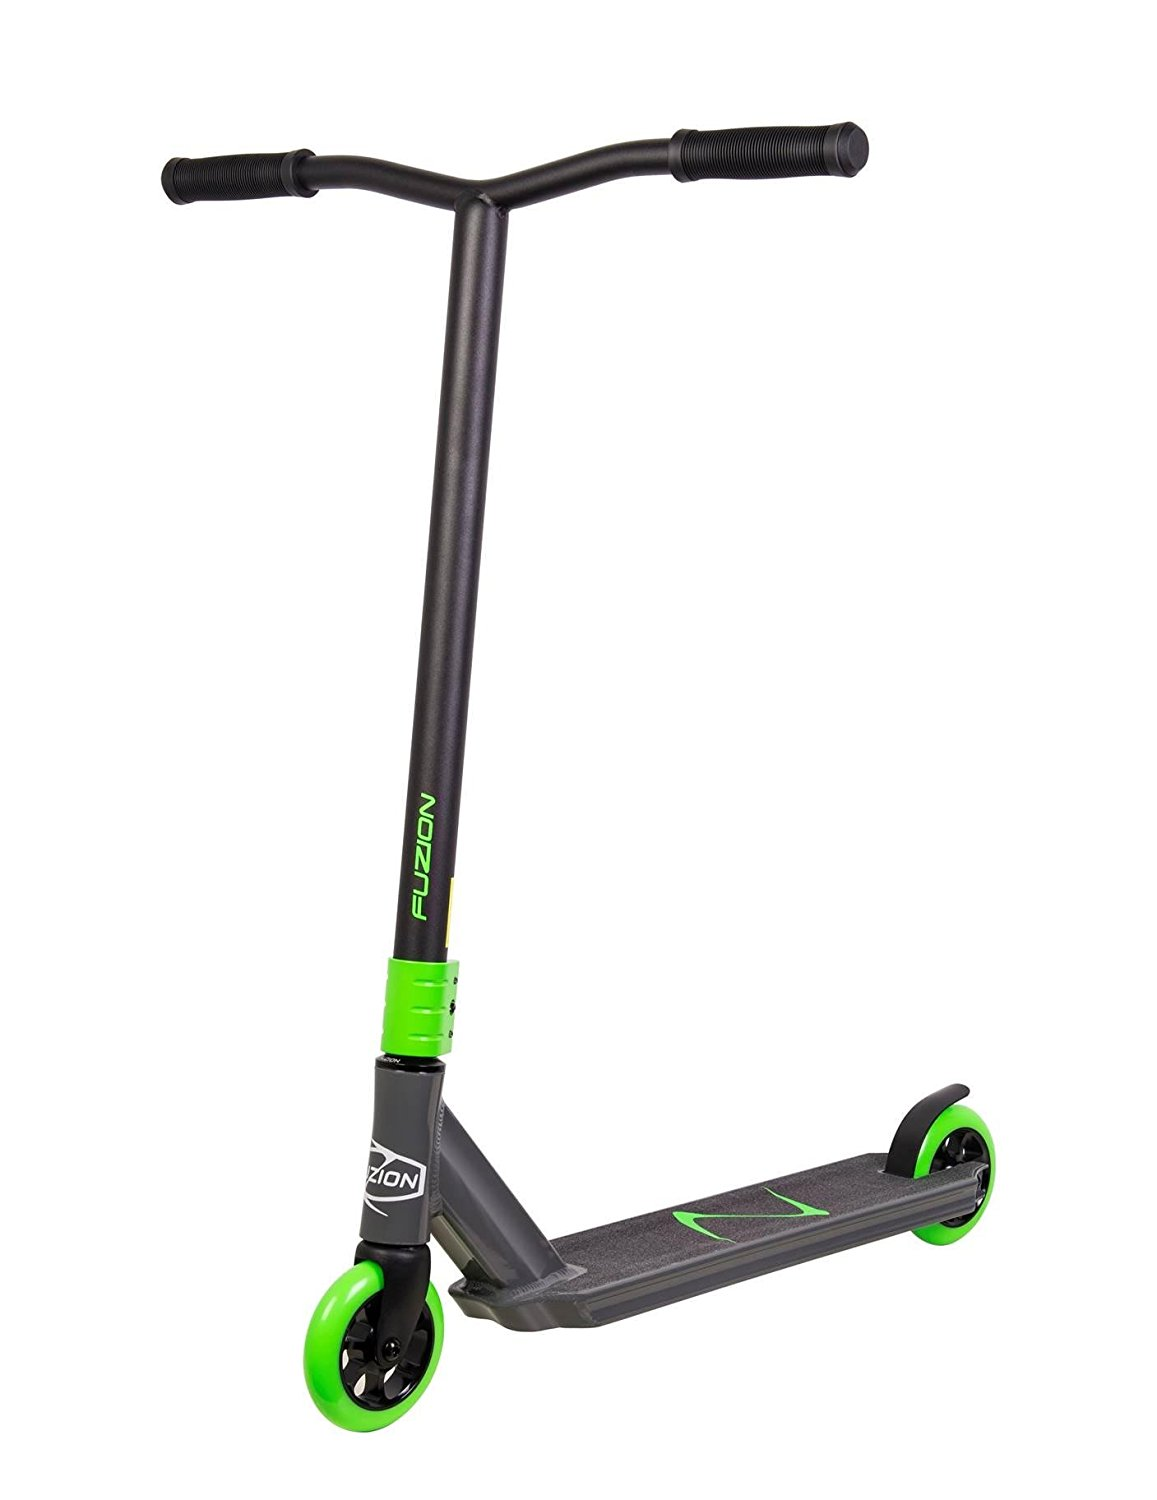 Fuzion Z300 Pro Scooter Green